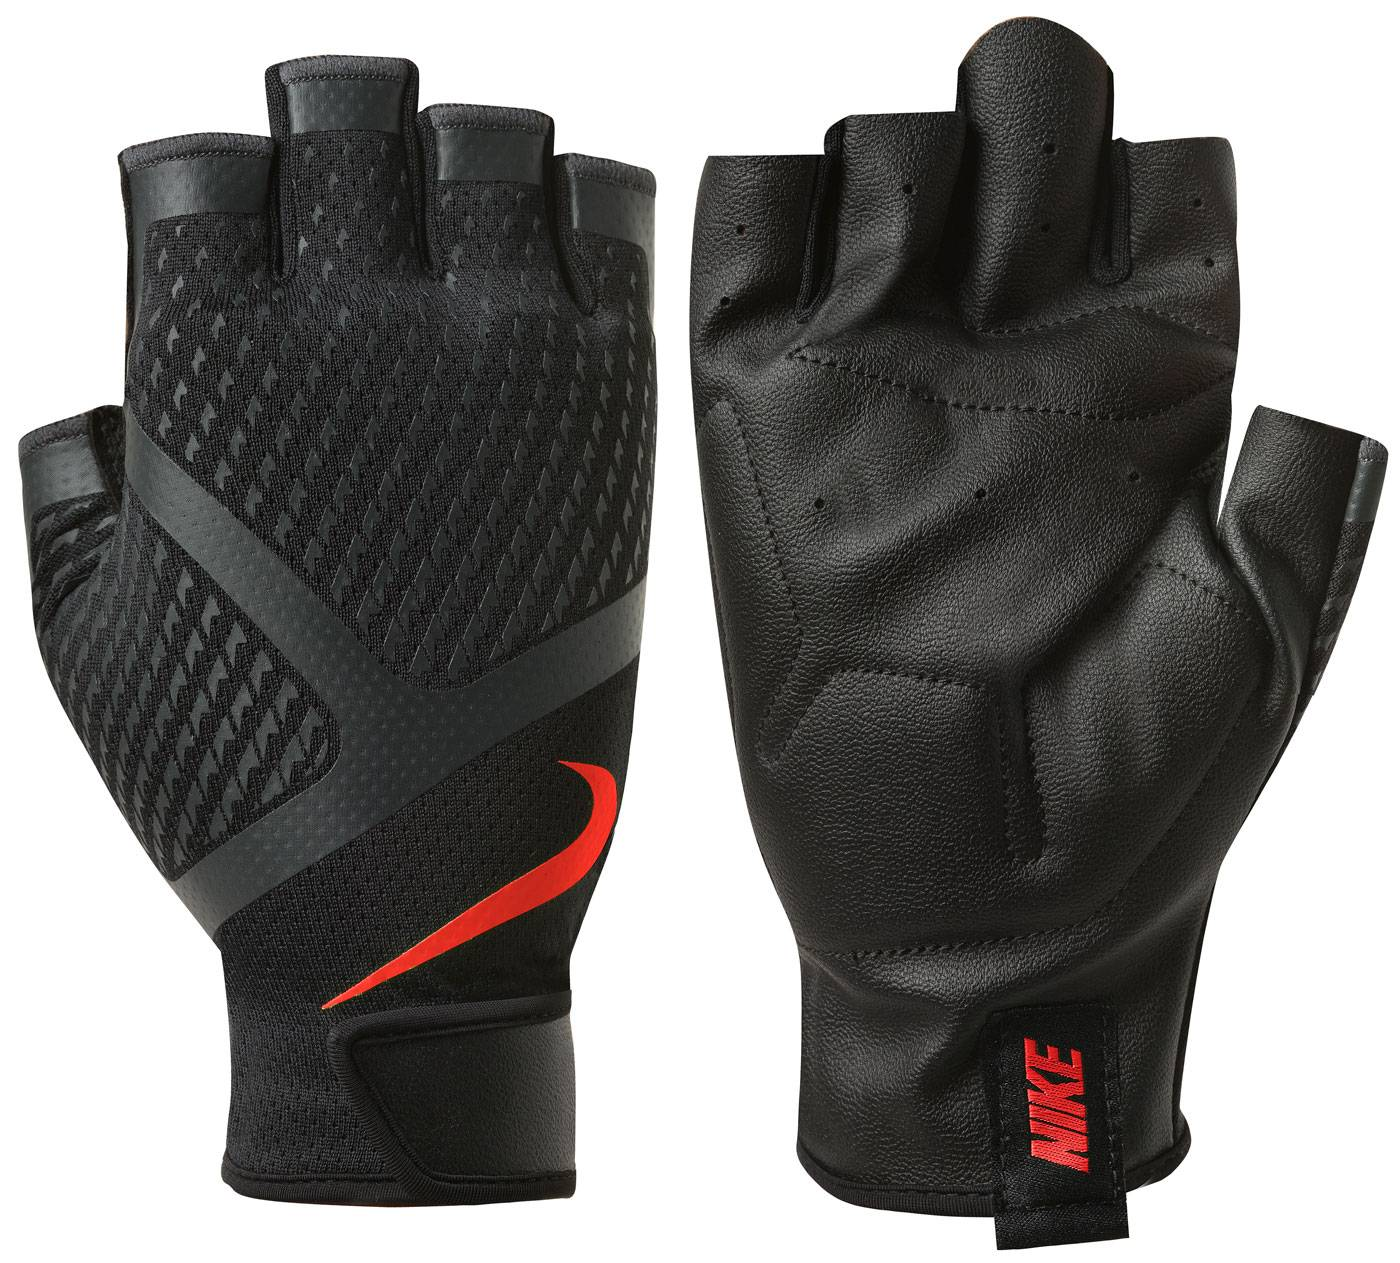 Mens nike leather gloves - Constructed With A Padded Pu Leather Palm The Nike Men S Renegade Training Gloves Offer You Lightweight Stability And Support While You Train